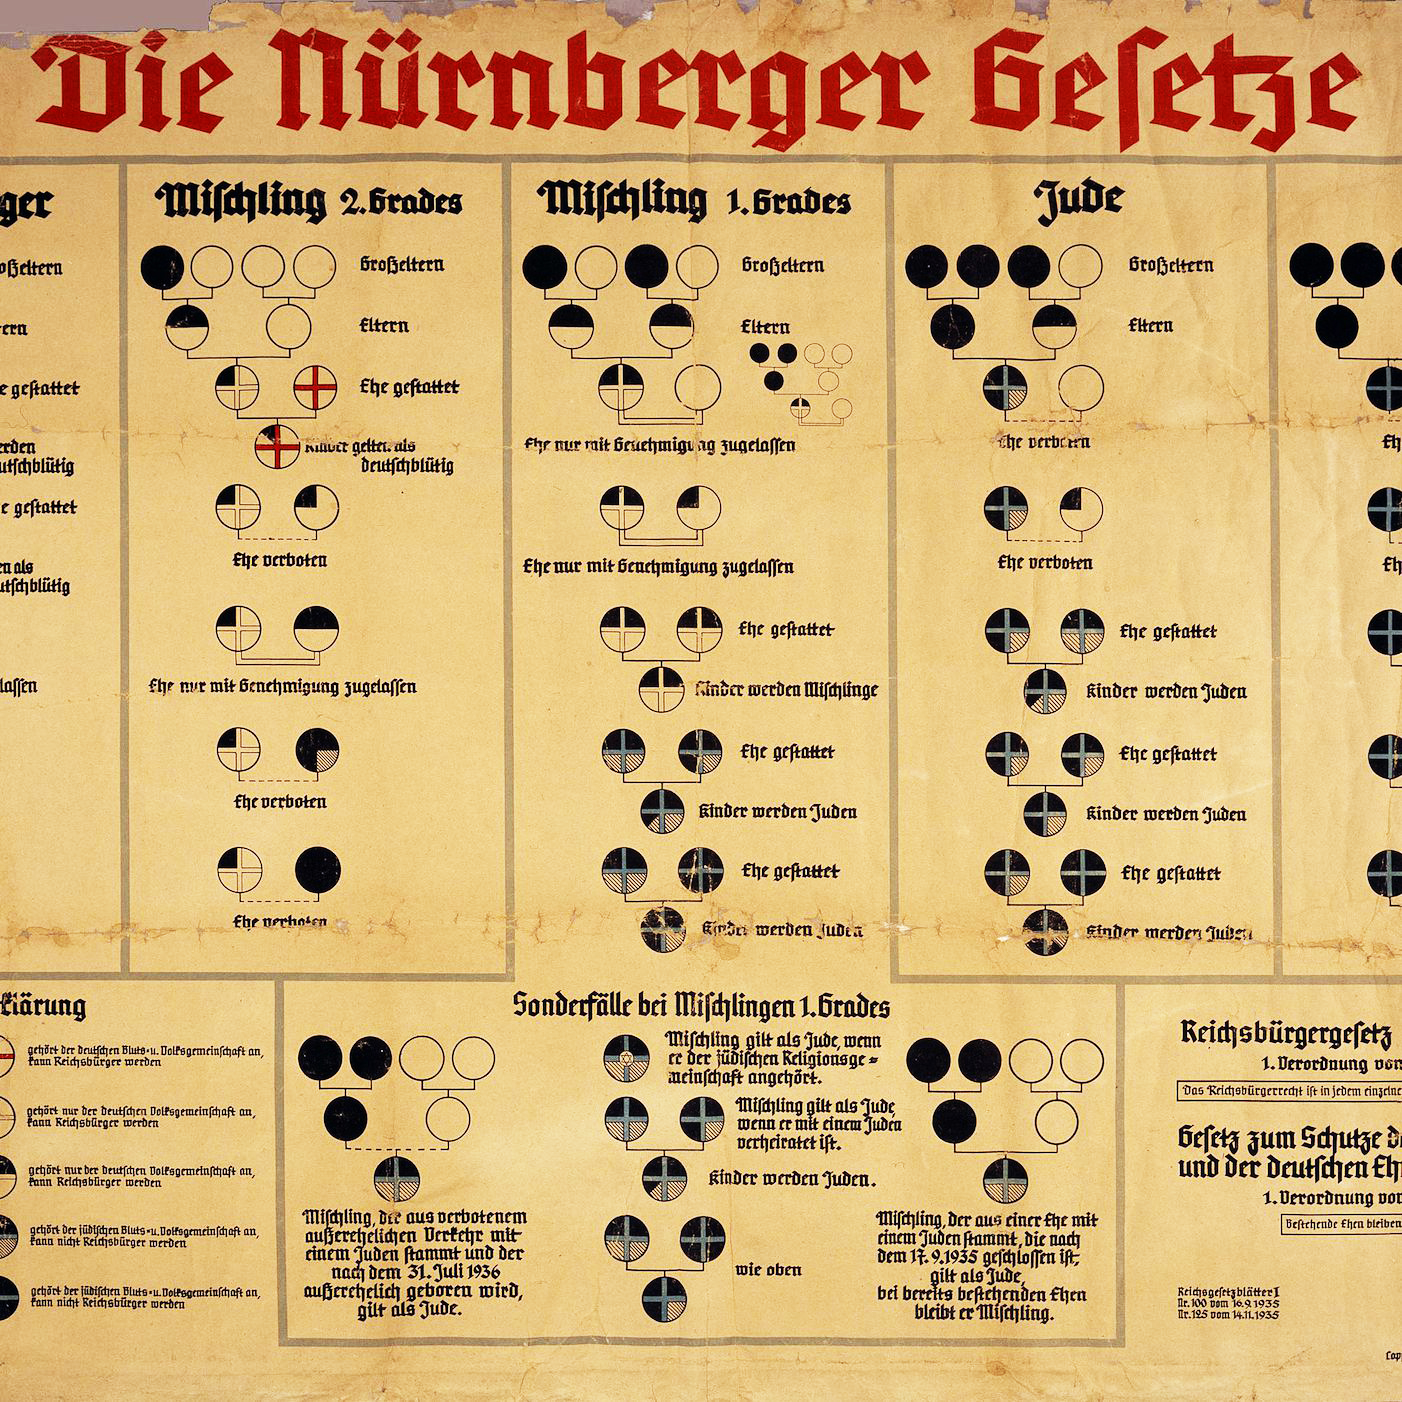 Nuremberg race laws imposed on September 15, 1935